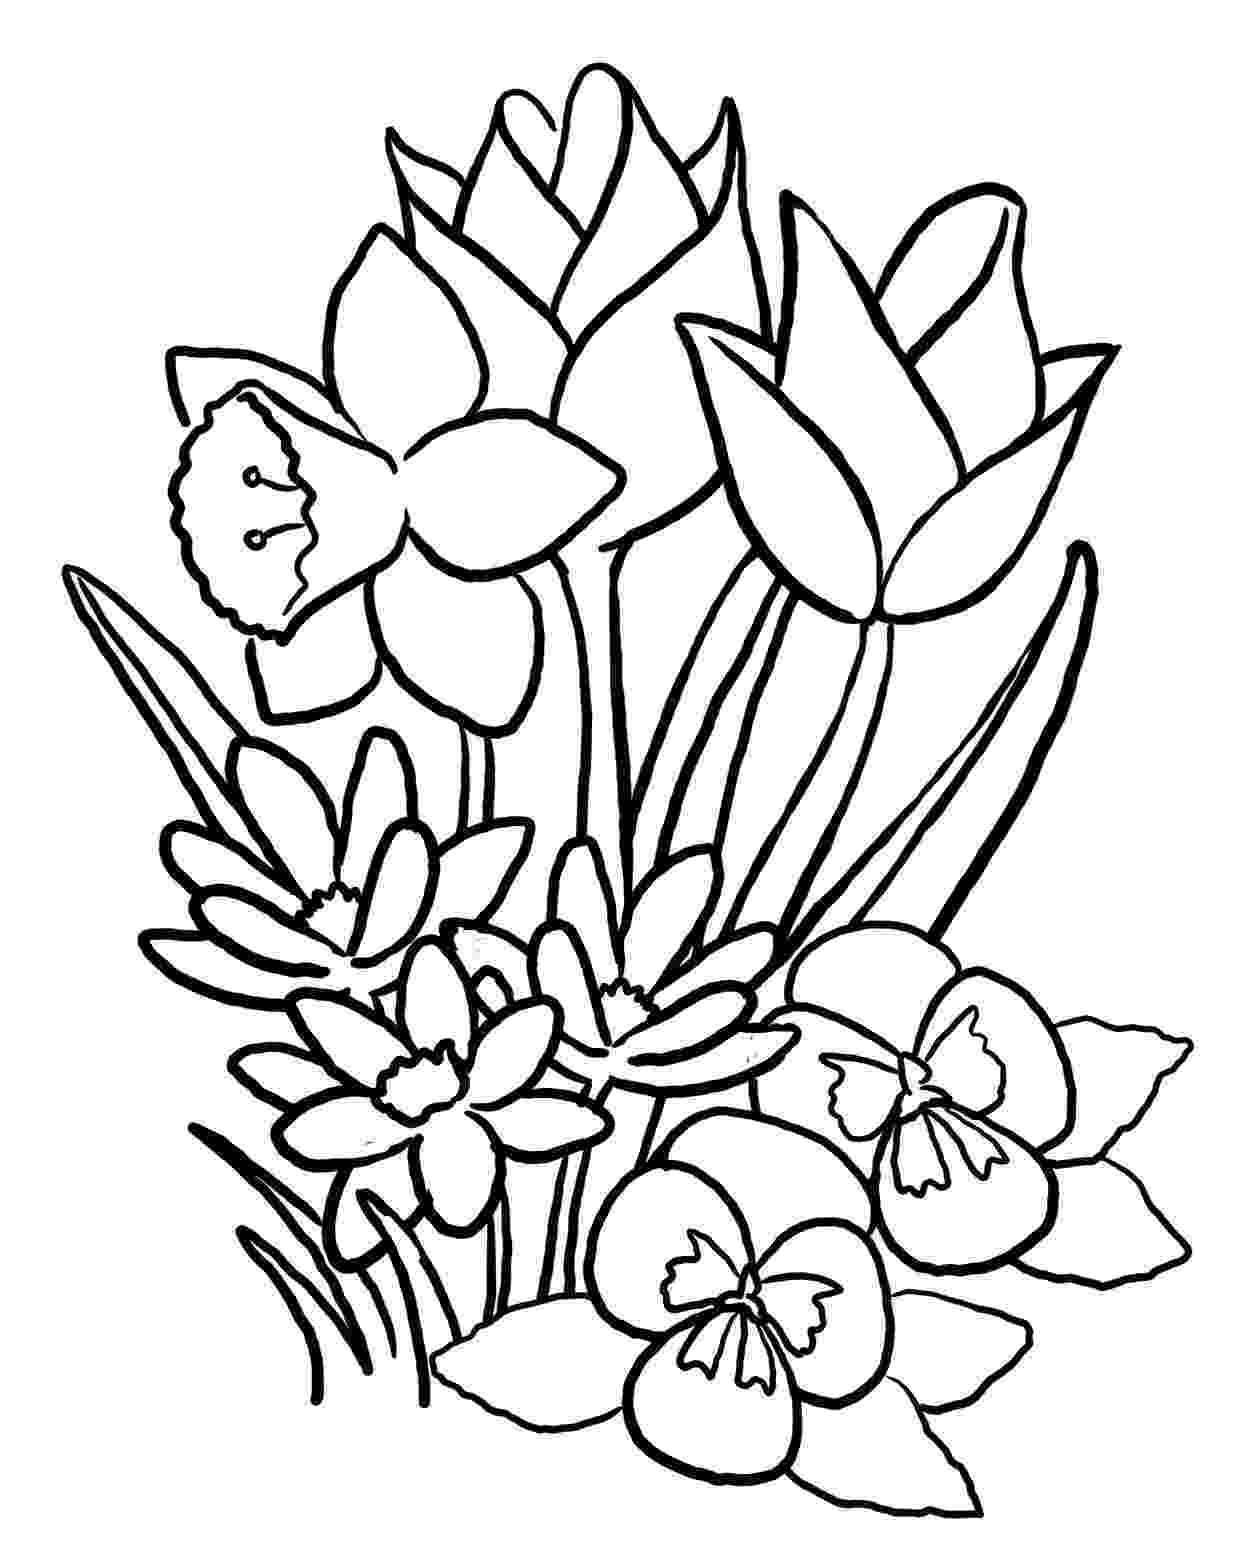 free printable flowers to color difficult flower coloring pages getcoloringpagescom to color flowers printable free